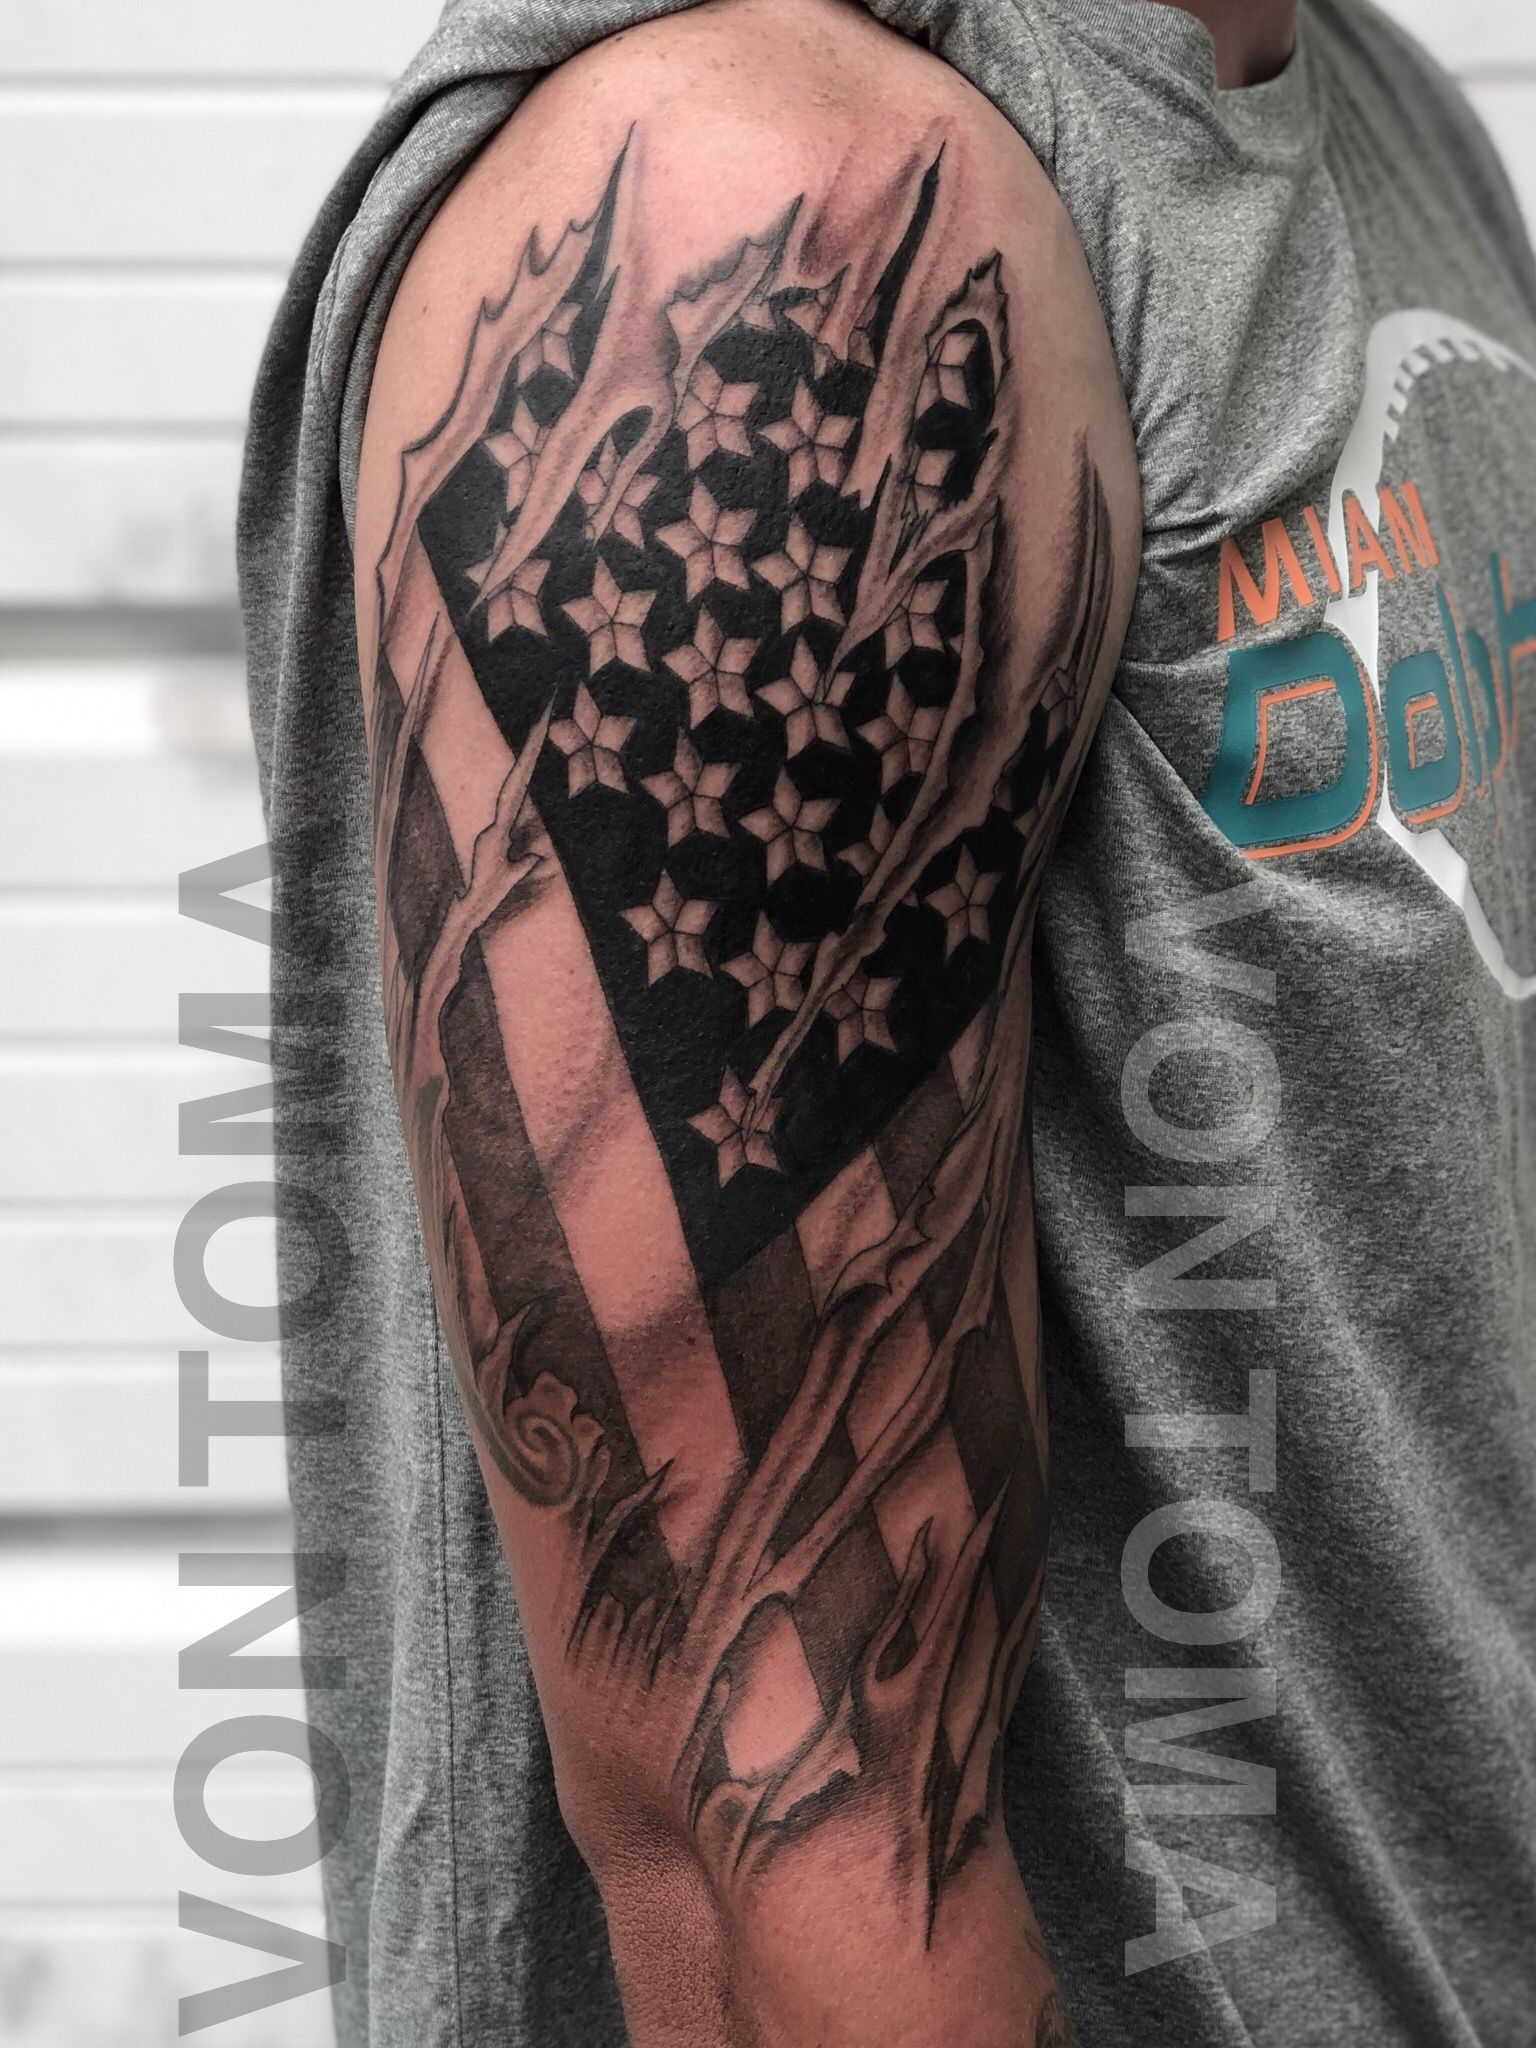 American Flag Sleeve Tattoos : american, sleeve, tattoos, American, Tattoo, Forearm, Tattoo,, Military, Tattoos,